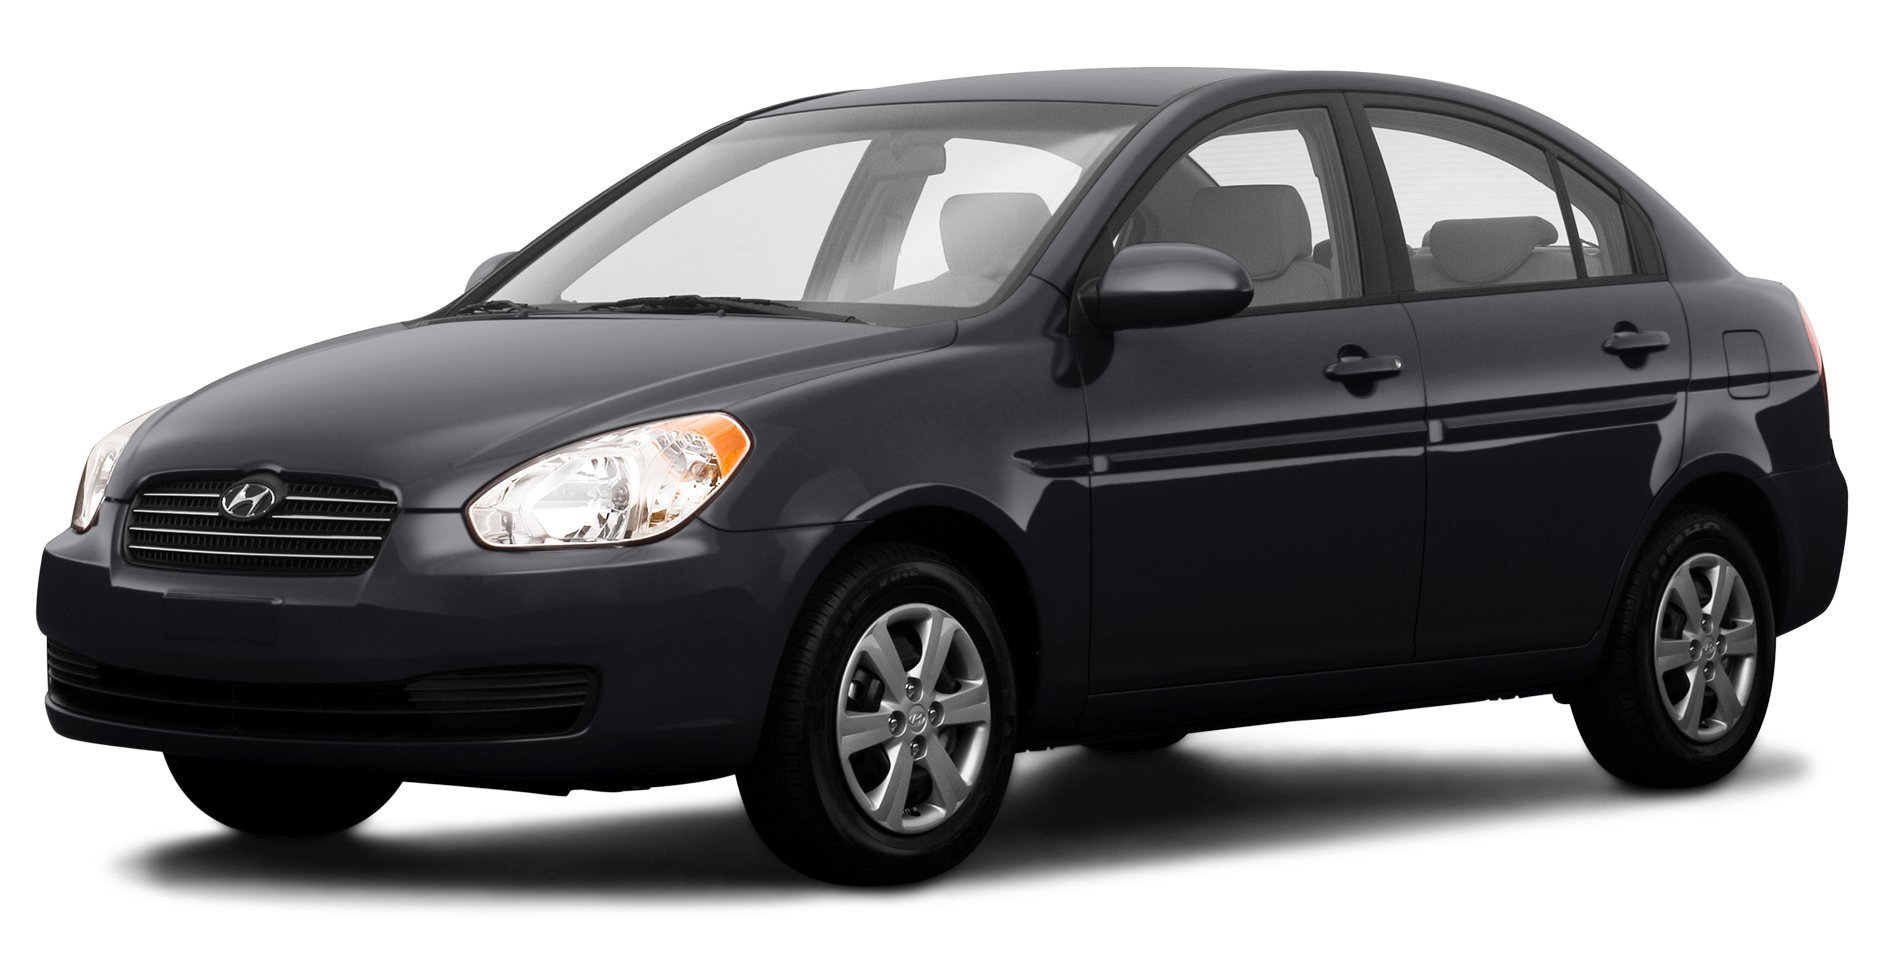 2009 hyundai accent reviews images and specs. Black Bedroom Furniture Sets. Home Design Ideas